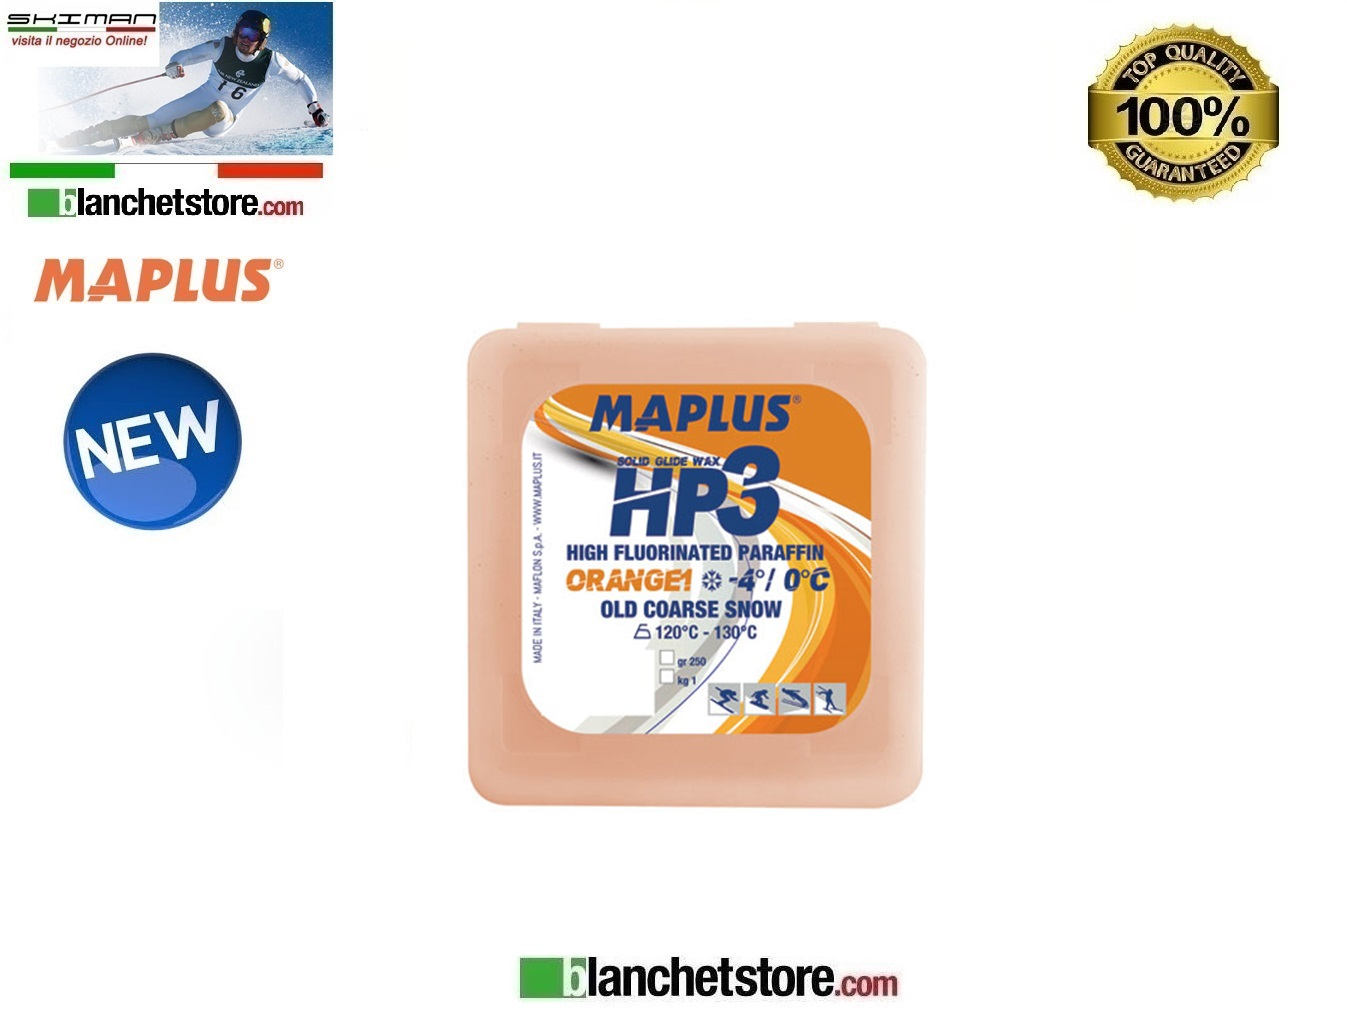 Sciolina MAPLUS HIGH FLUO HP 3 Conf 250 gr ORANGE-1 NEW